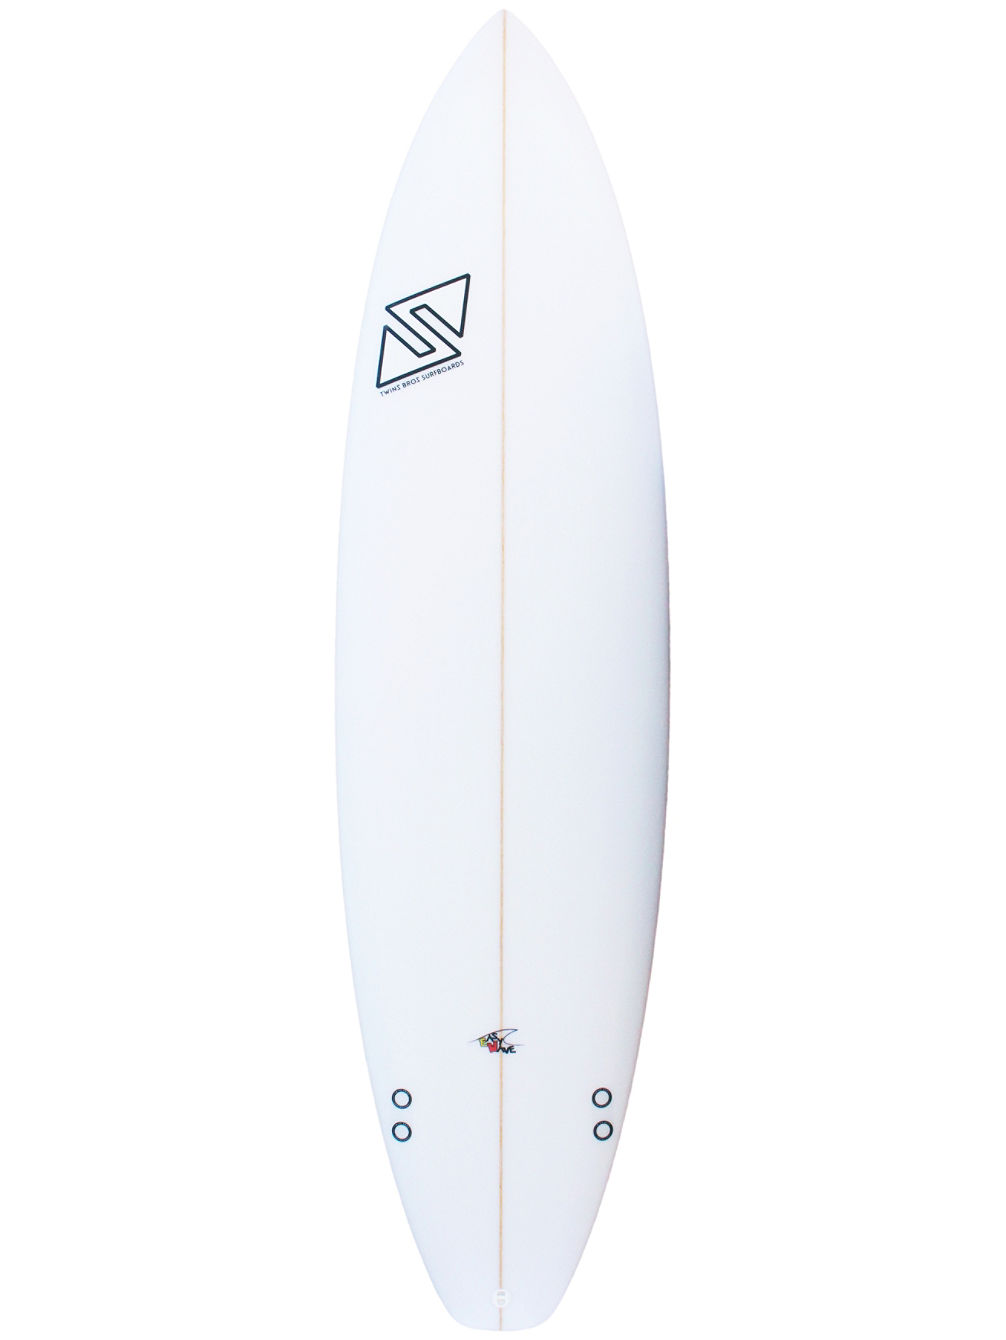 Easy Wave Future 6'4 Surfboard